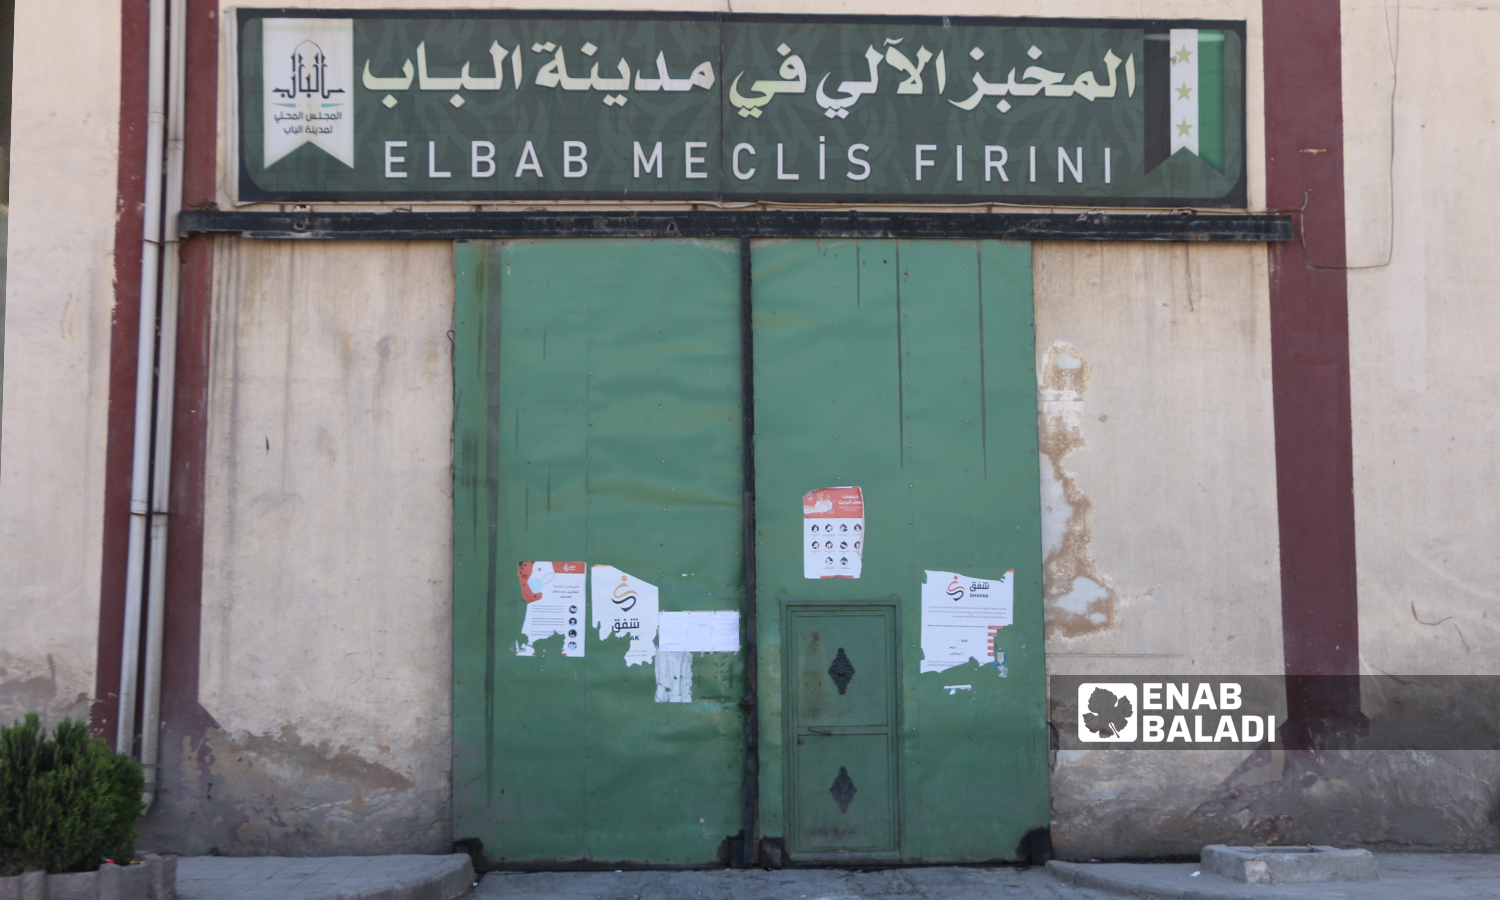 The outside door of the automated bakery in al-Bab city - 8 October 2021 (Enab Baladi - Siraj Mohammed)